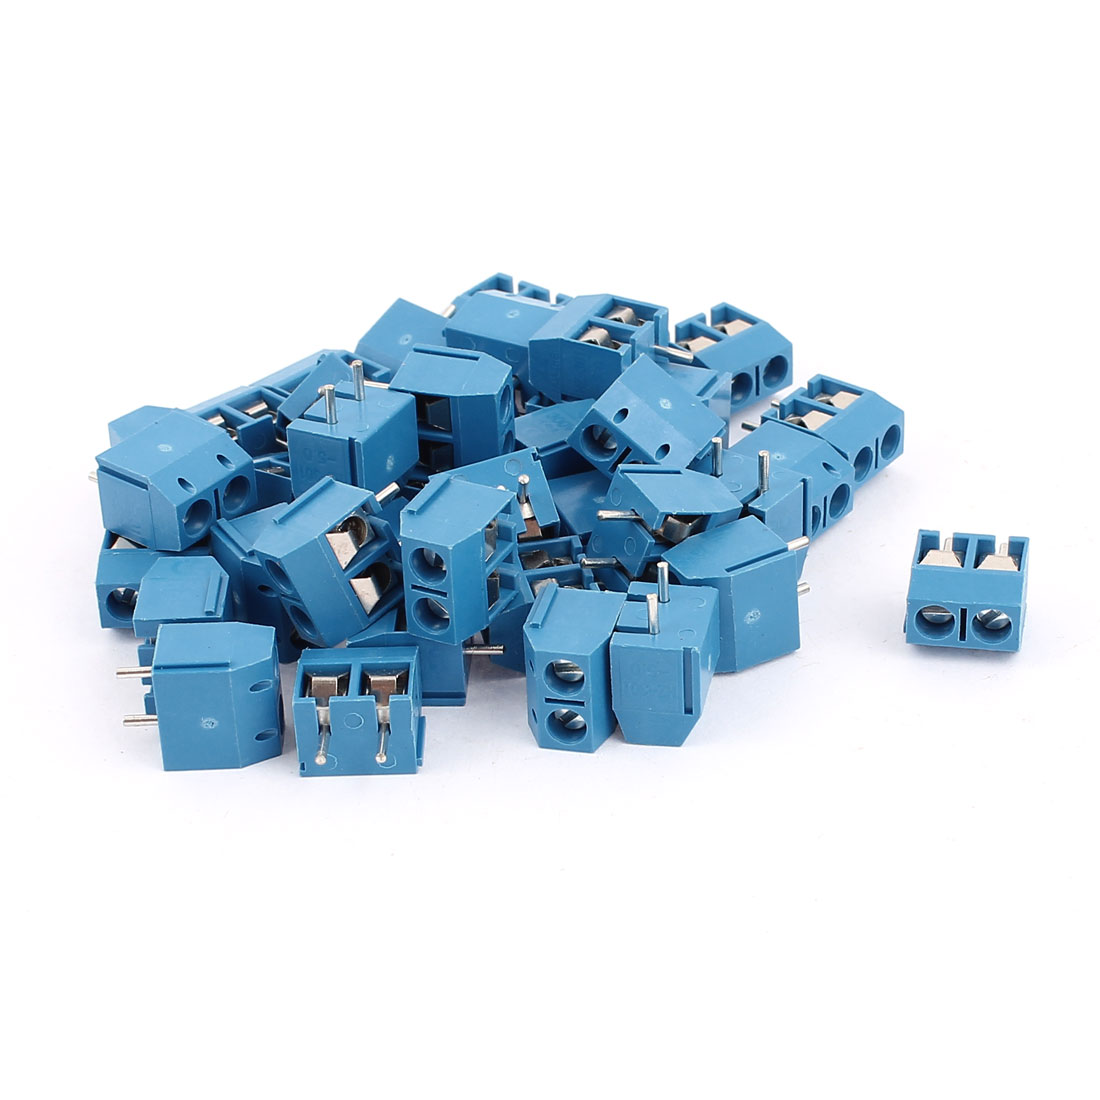 40Pcs AC 300V 10A HZ301-5.0 2 Pins 5mm Pinch PCB Mounting Screw Terminal Block Connector